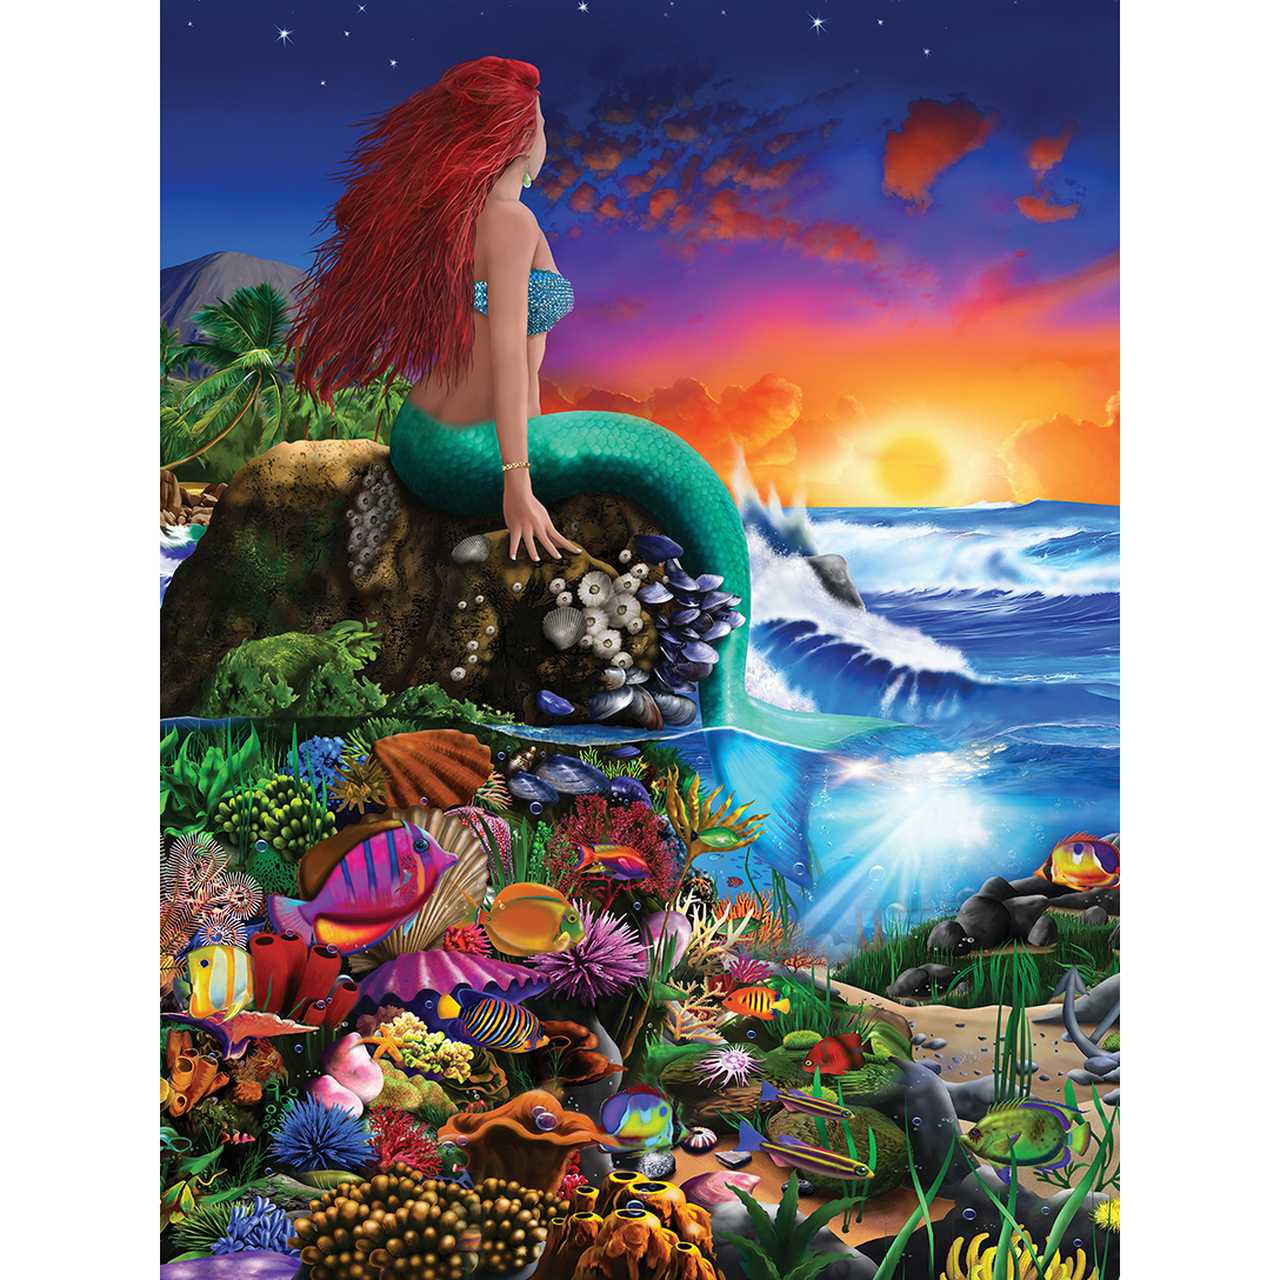 master-pieces-xxl-teile-book-box-little-mermaid-300-teile-puzzle-master-pieces-31723